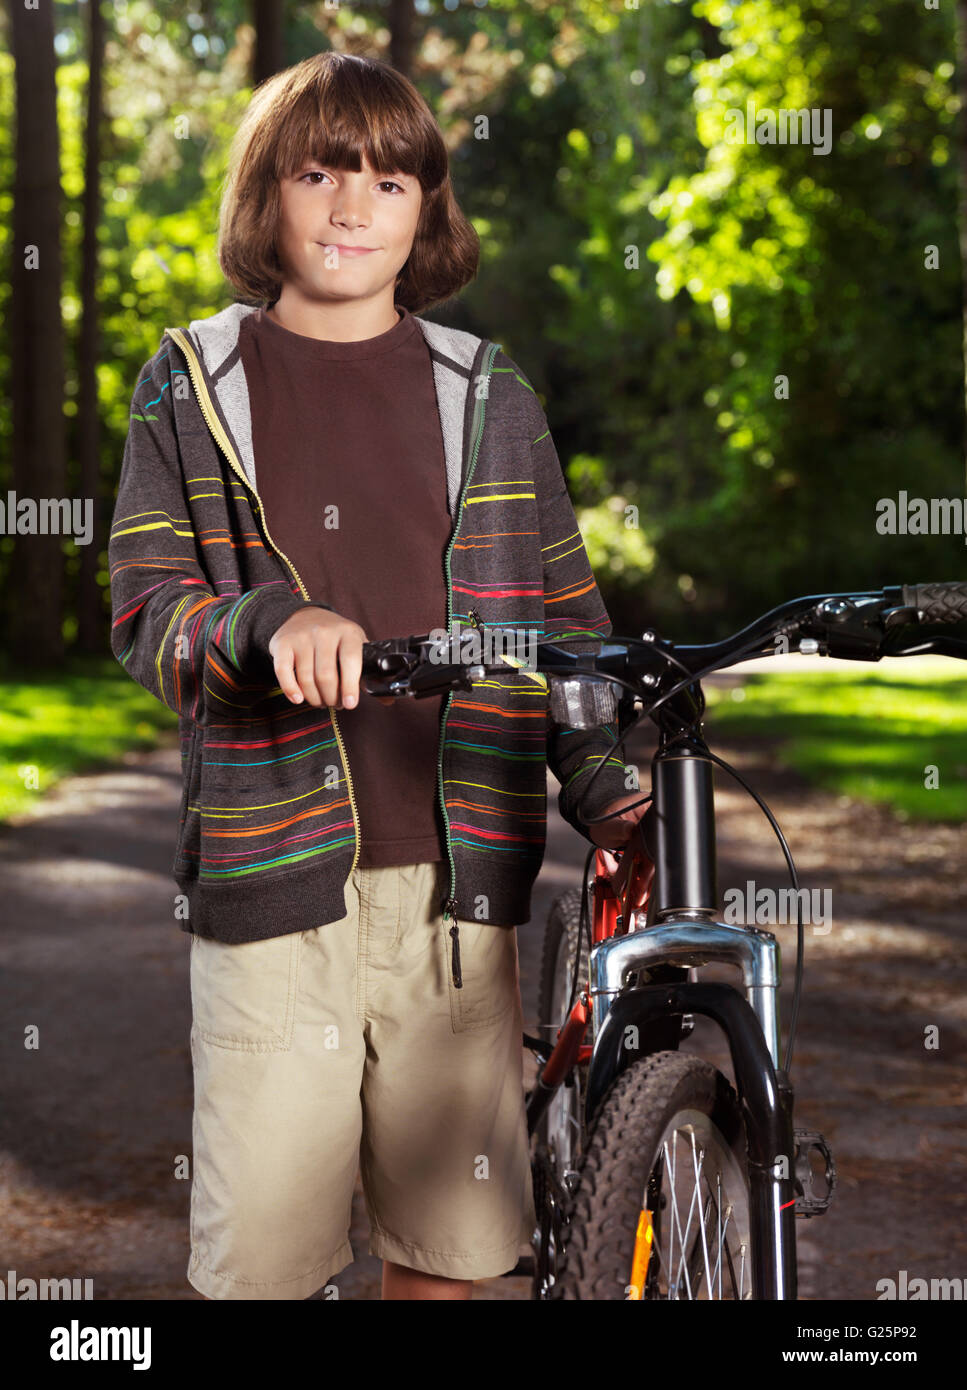 Boy, ten years, standing next to his bicycle - Stock Image